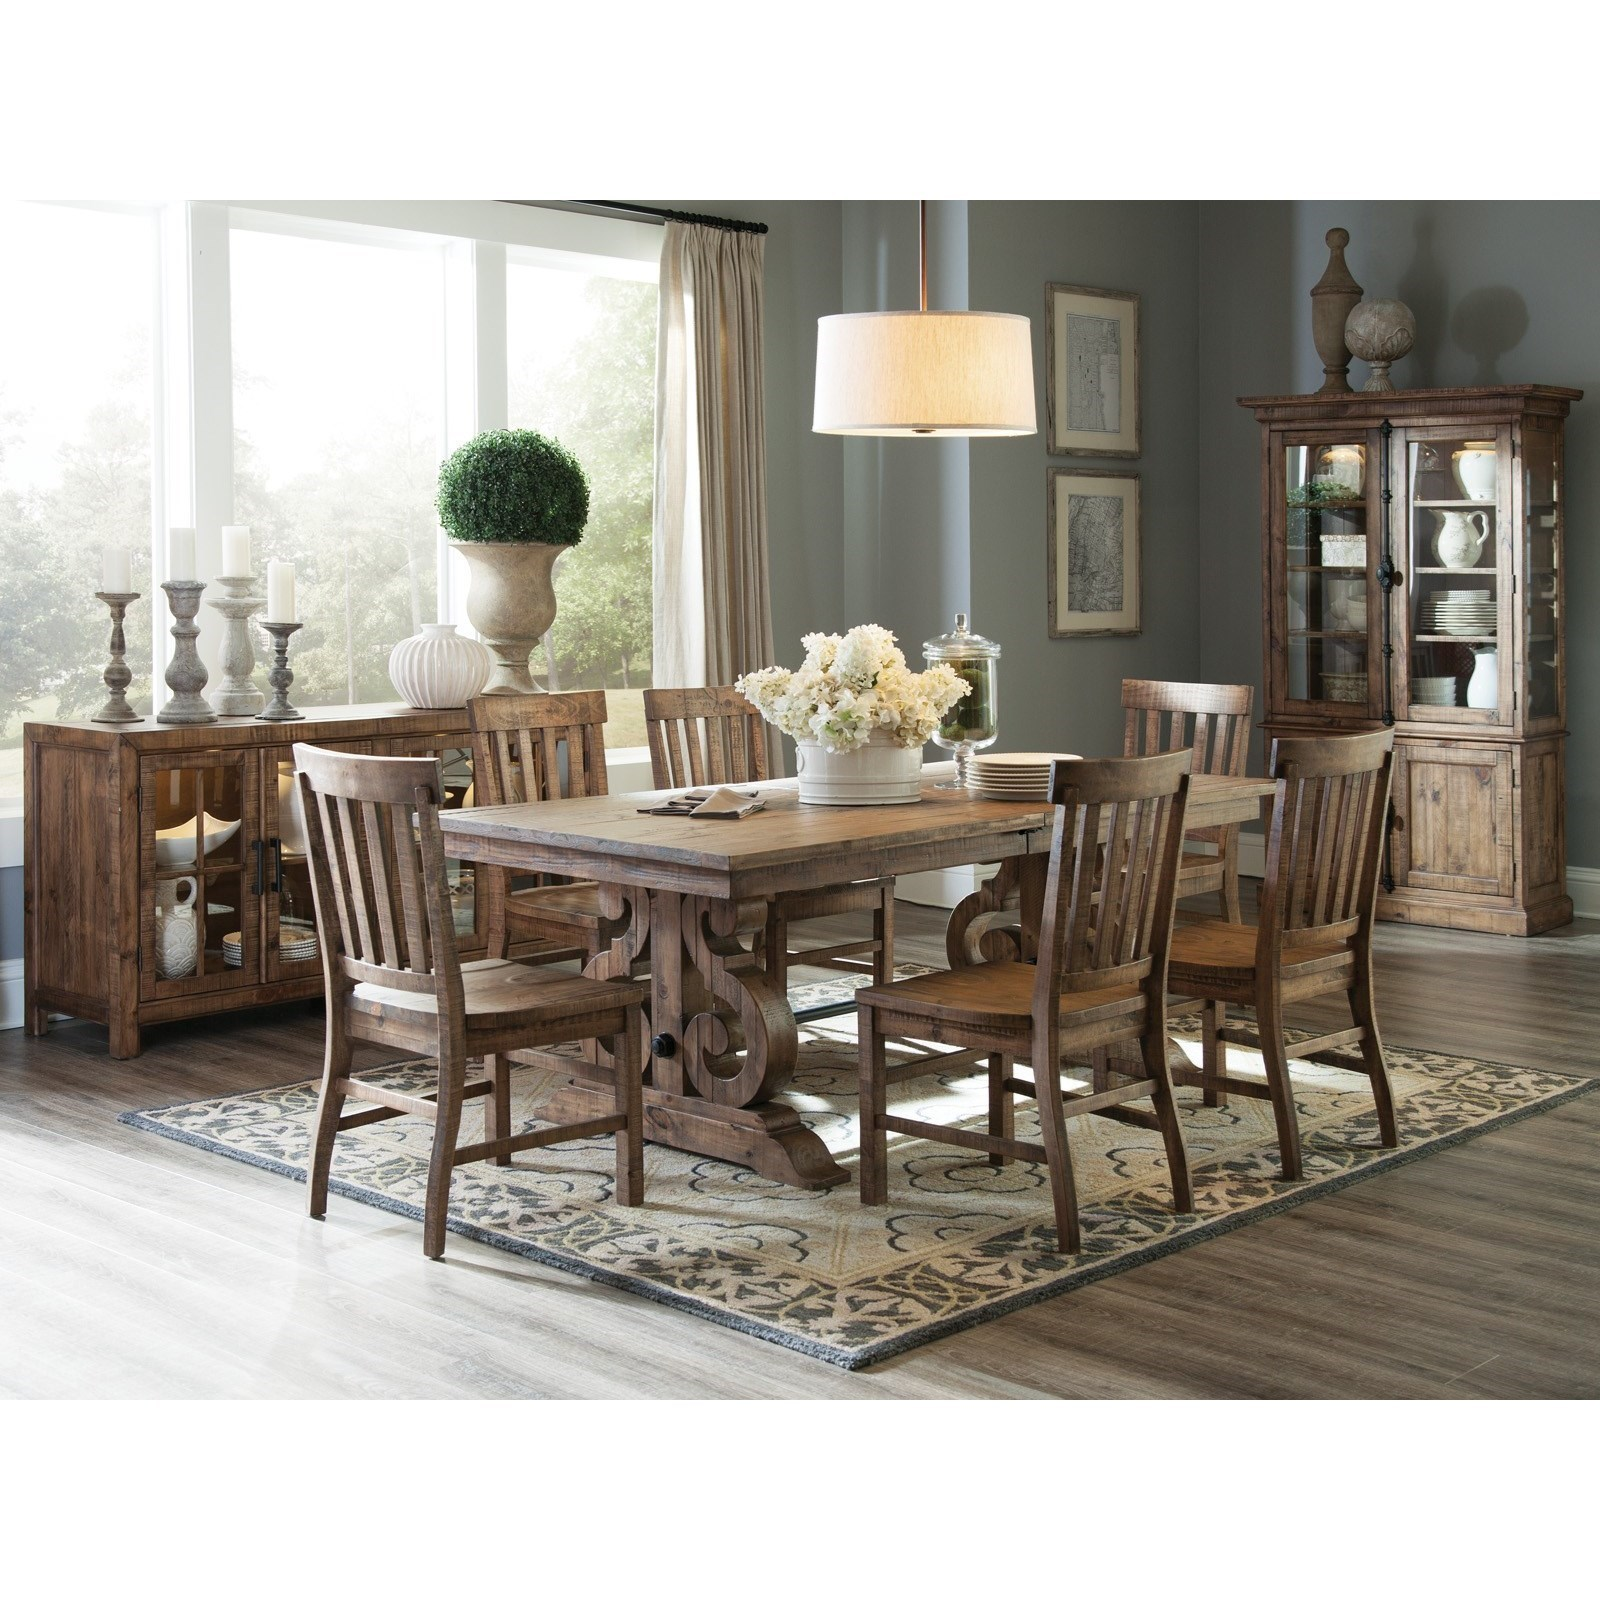 ... Magnussen Home Willoughby7 Piece Rectangular Dining Table Set